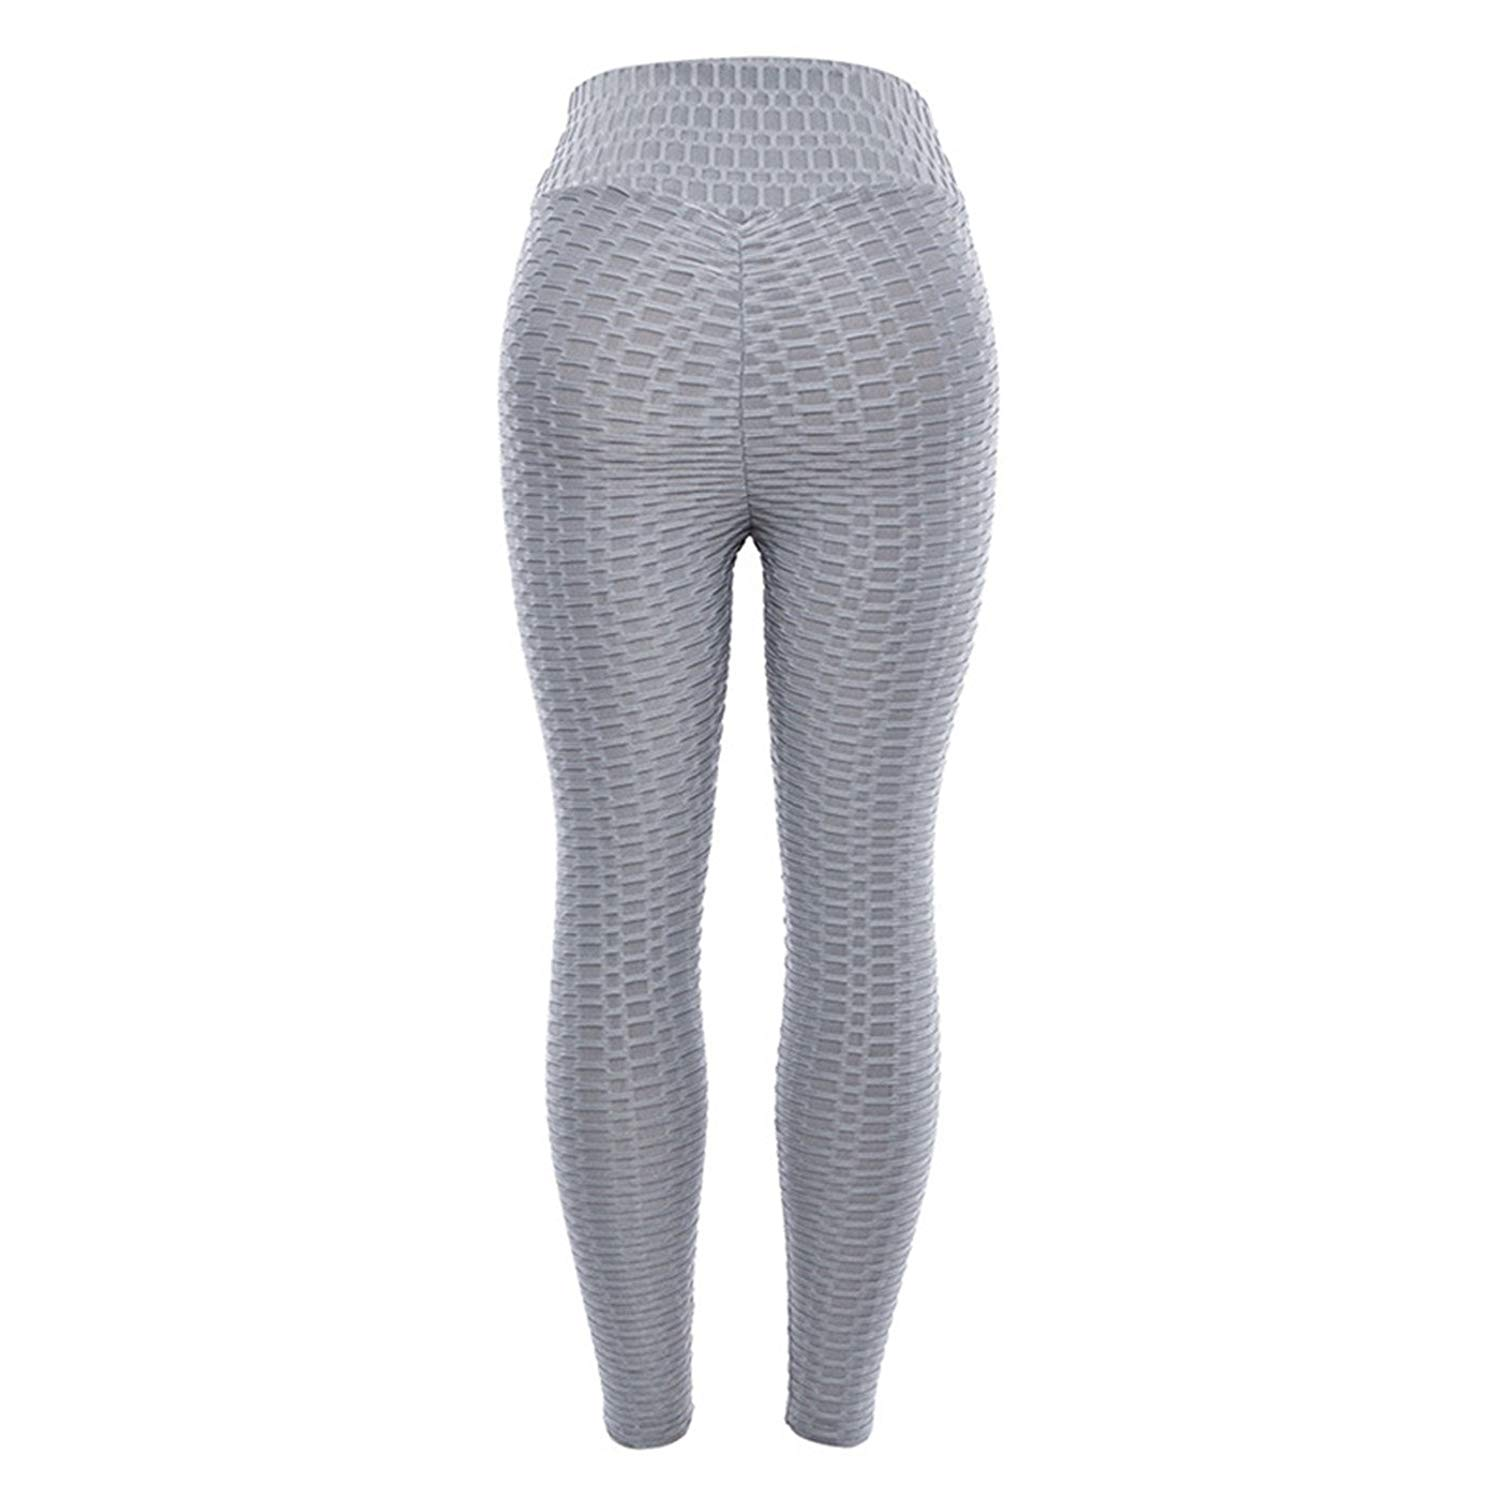 dc3f8790d Get Quotations · YGDRE Womens High Waist Ruched Butt Yoga Leggings Butt  Lift Ruched Sport Capris Pants